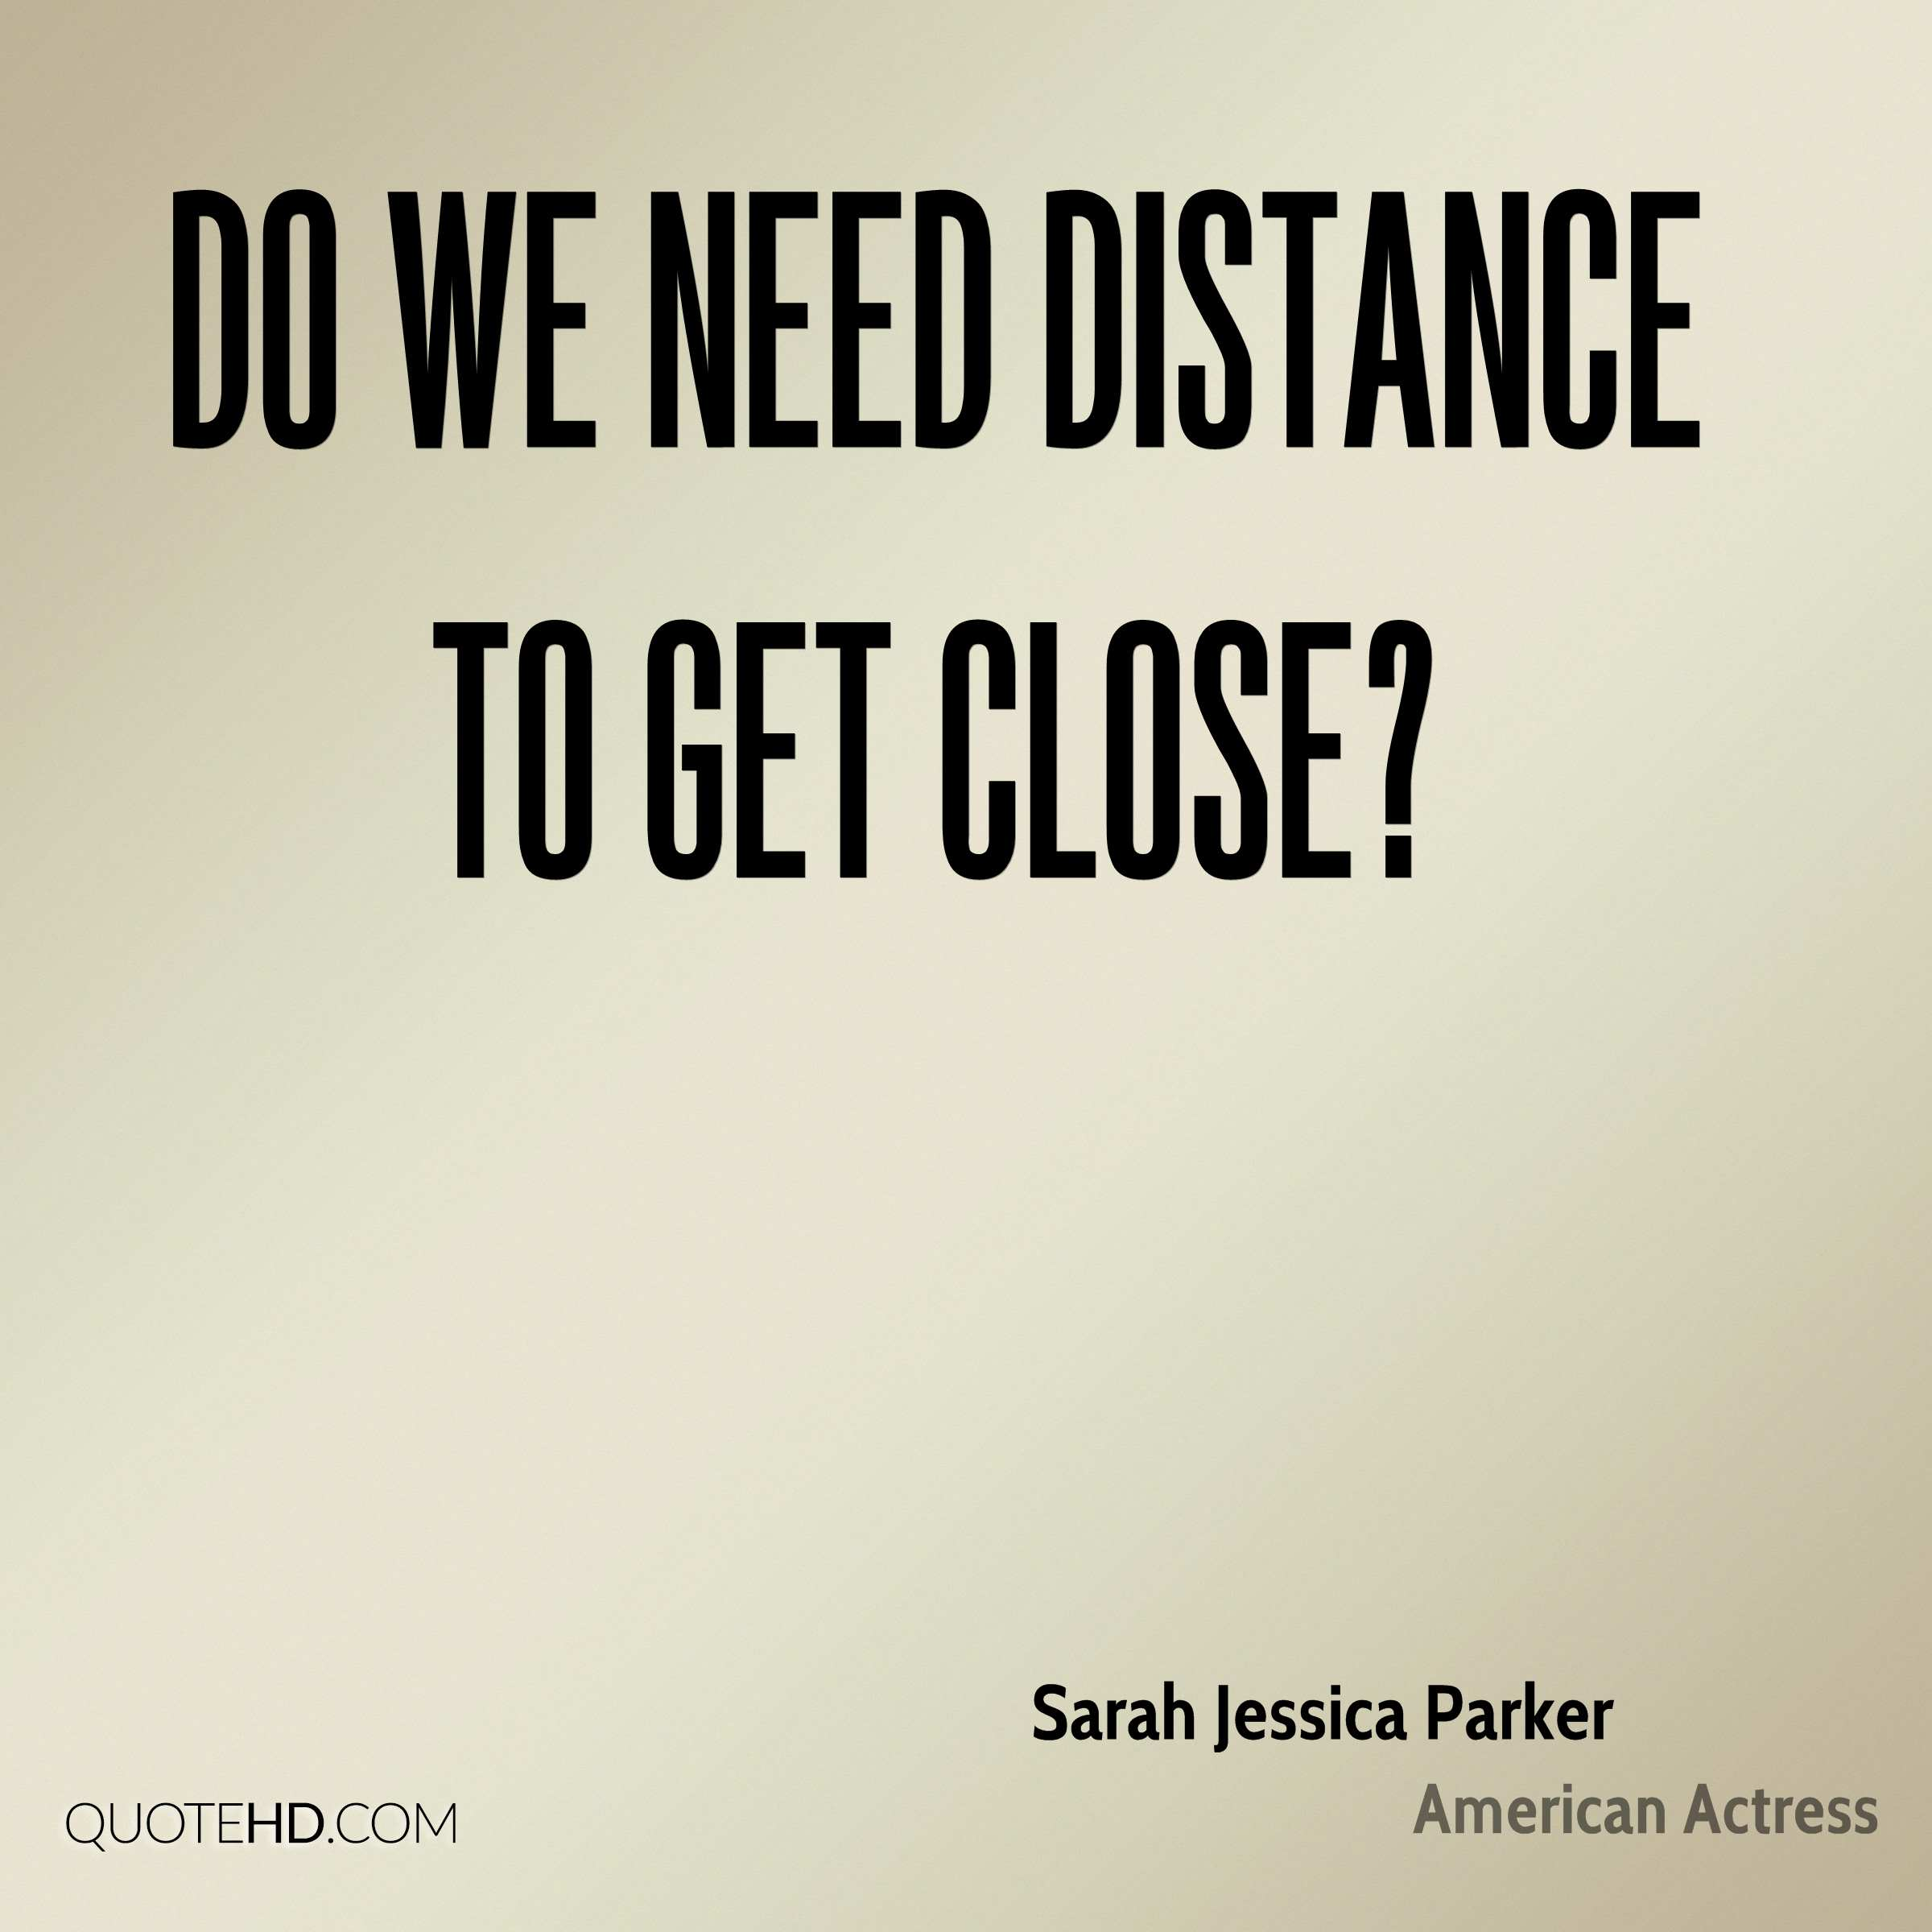 Do we need distance to get close?